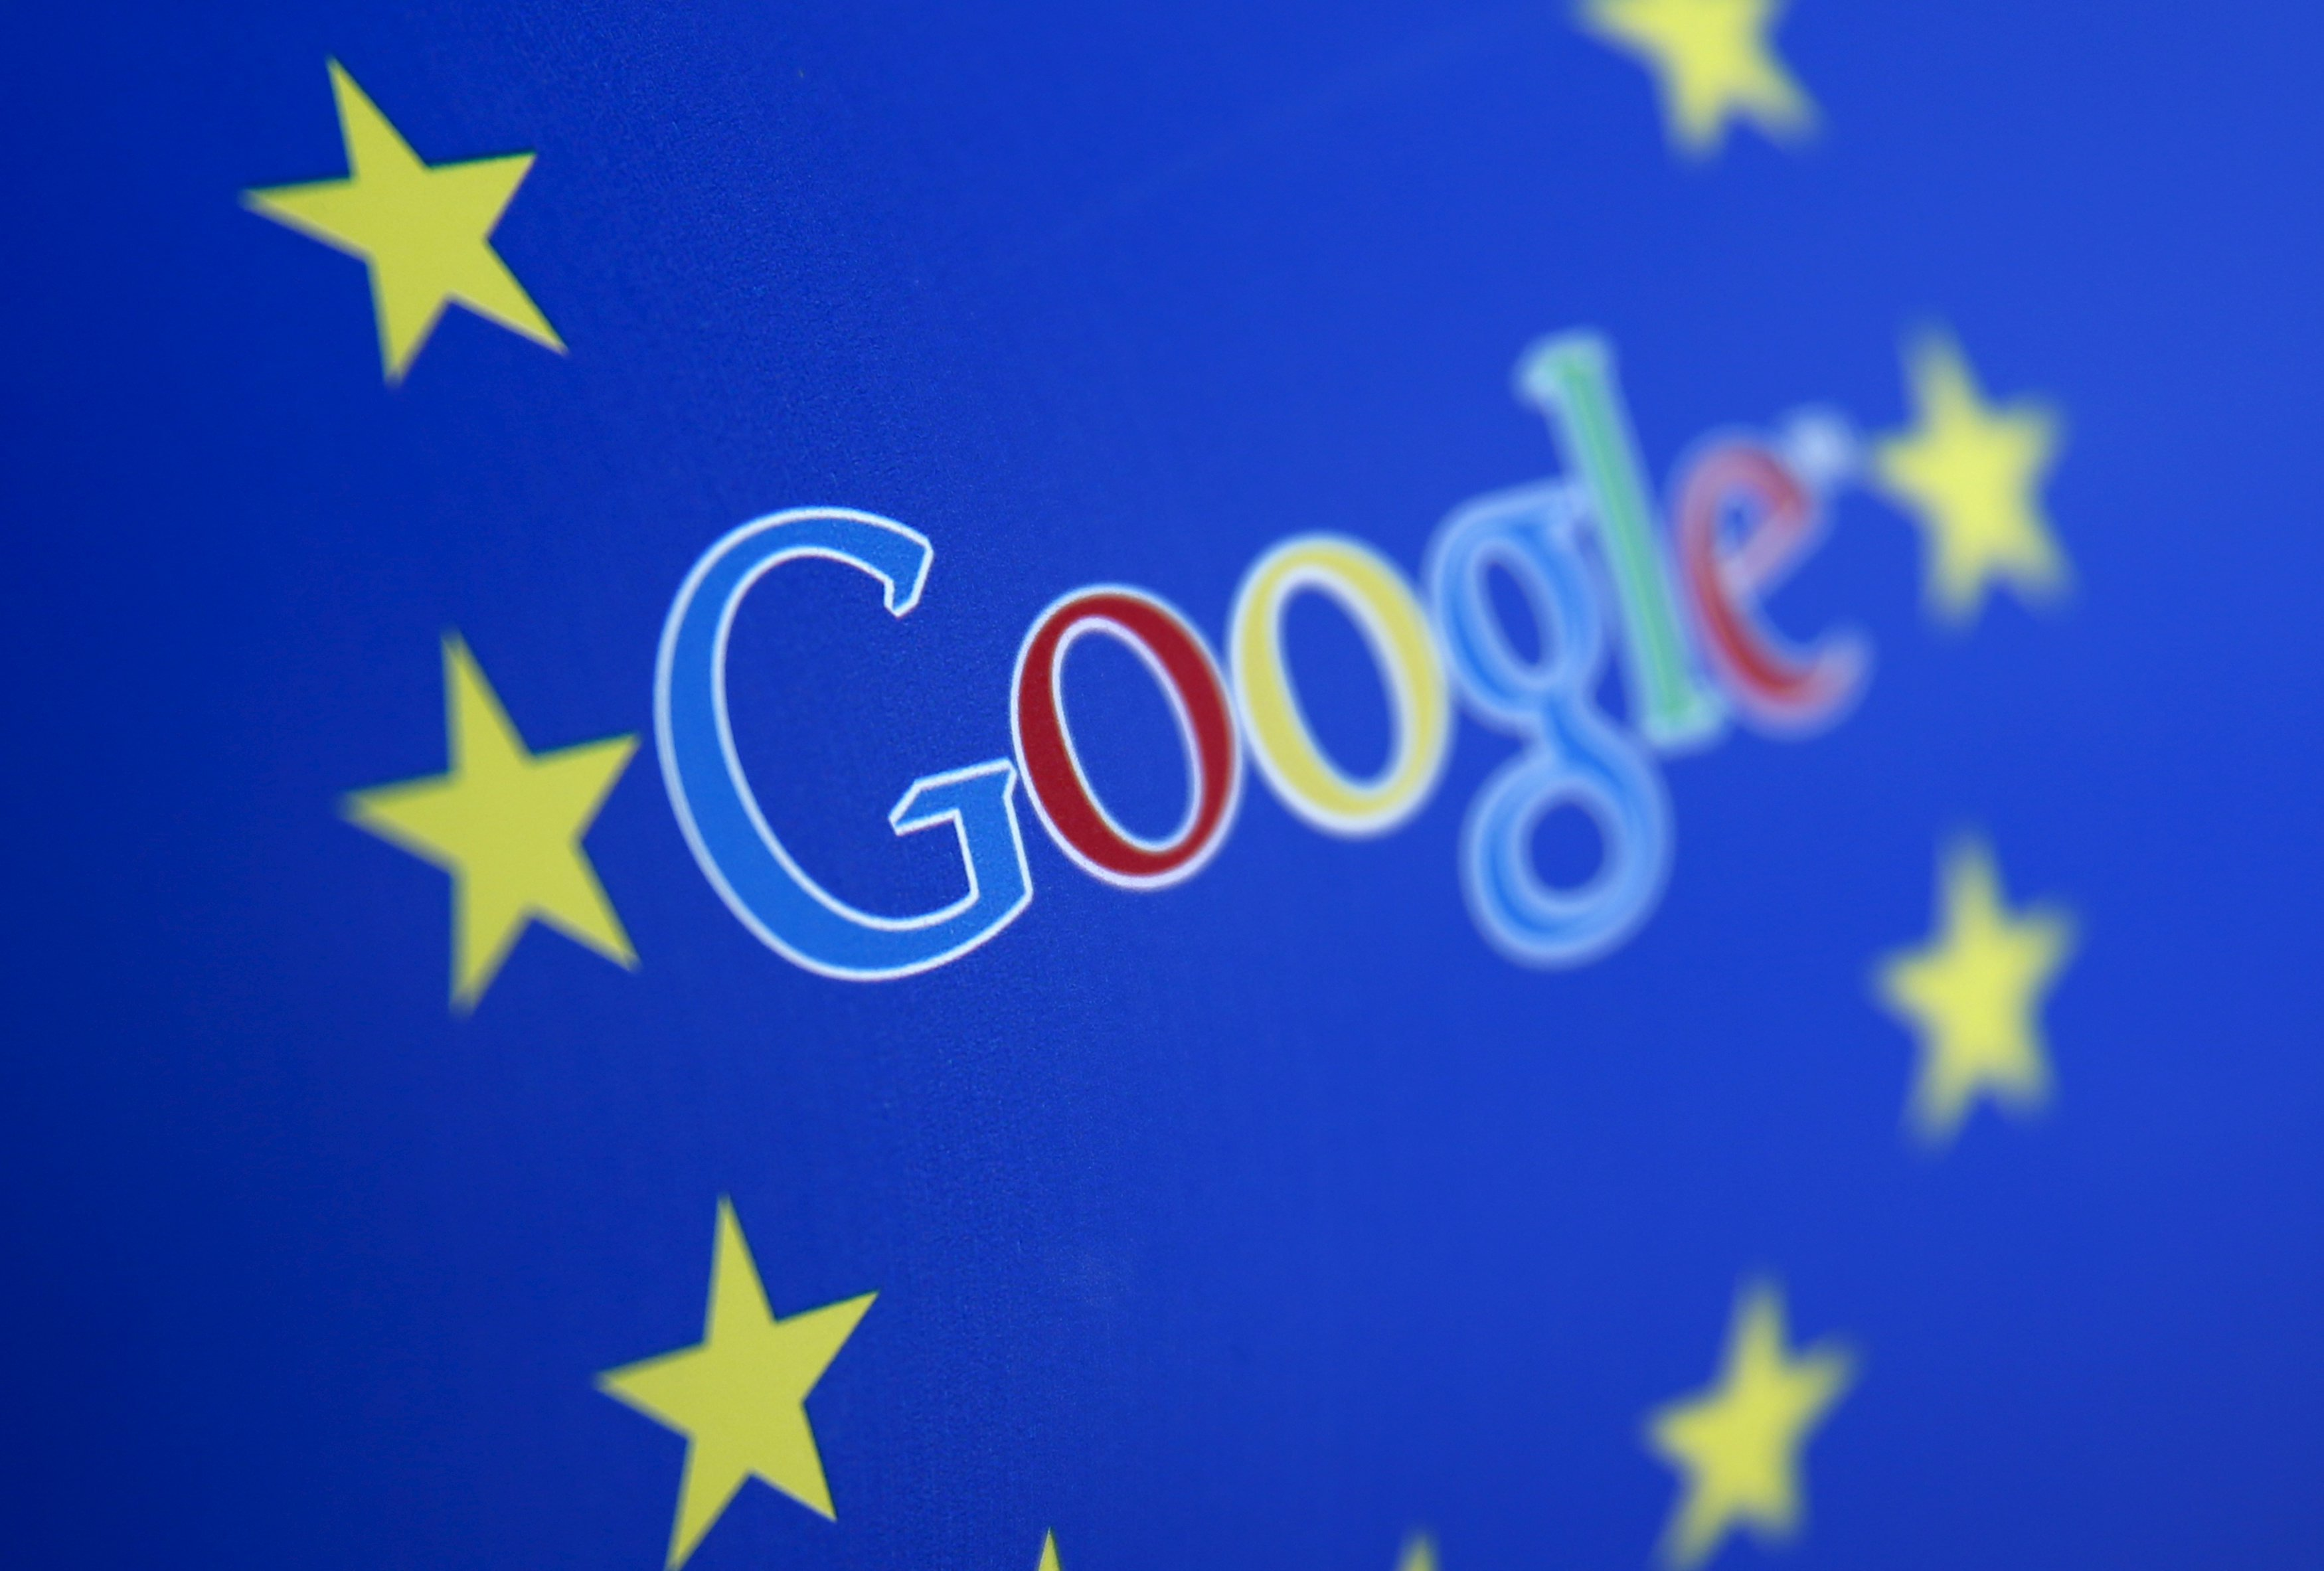 Google and European Union logos are seen in Sarajevo, in this April 15, 2015 photo illustration.